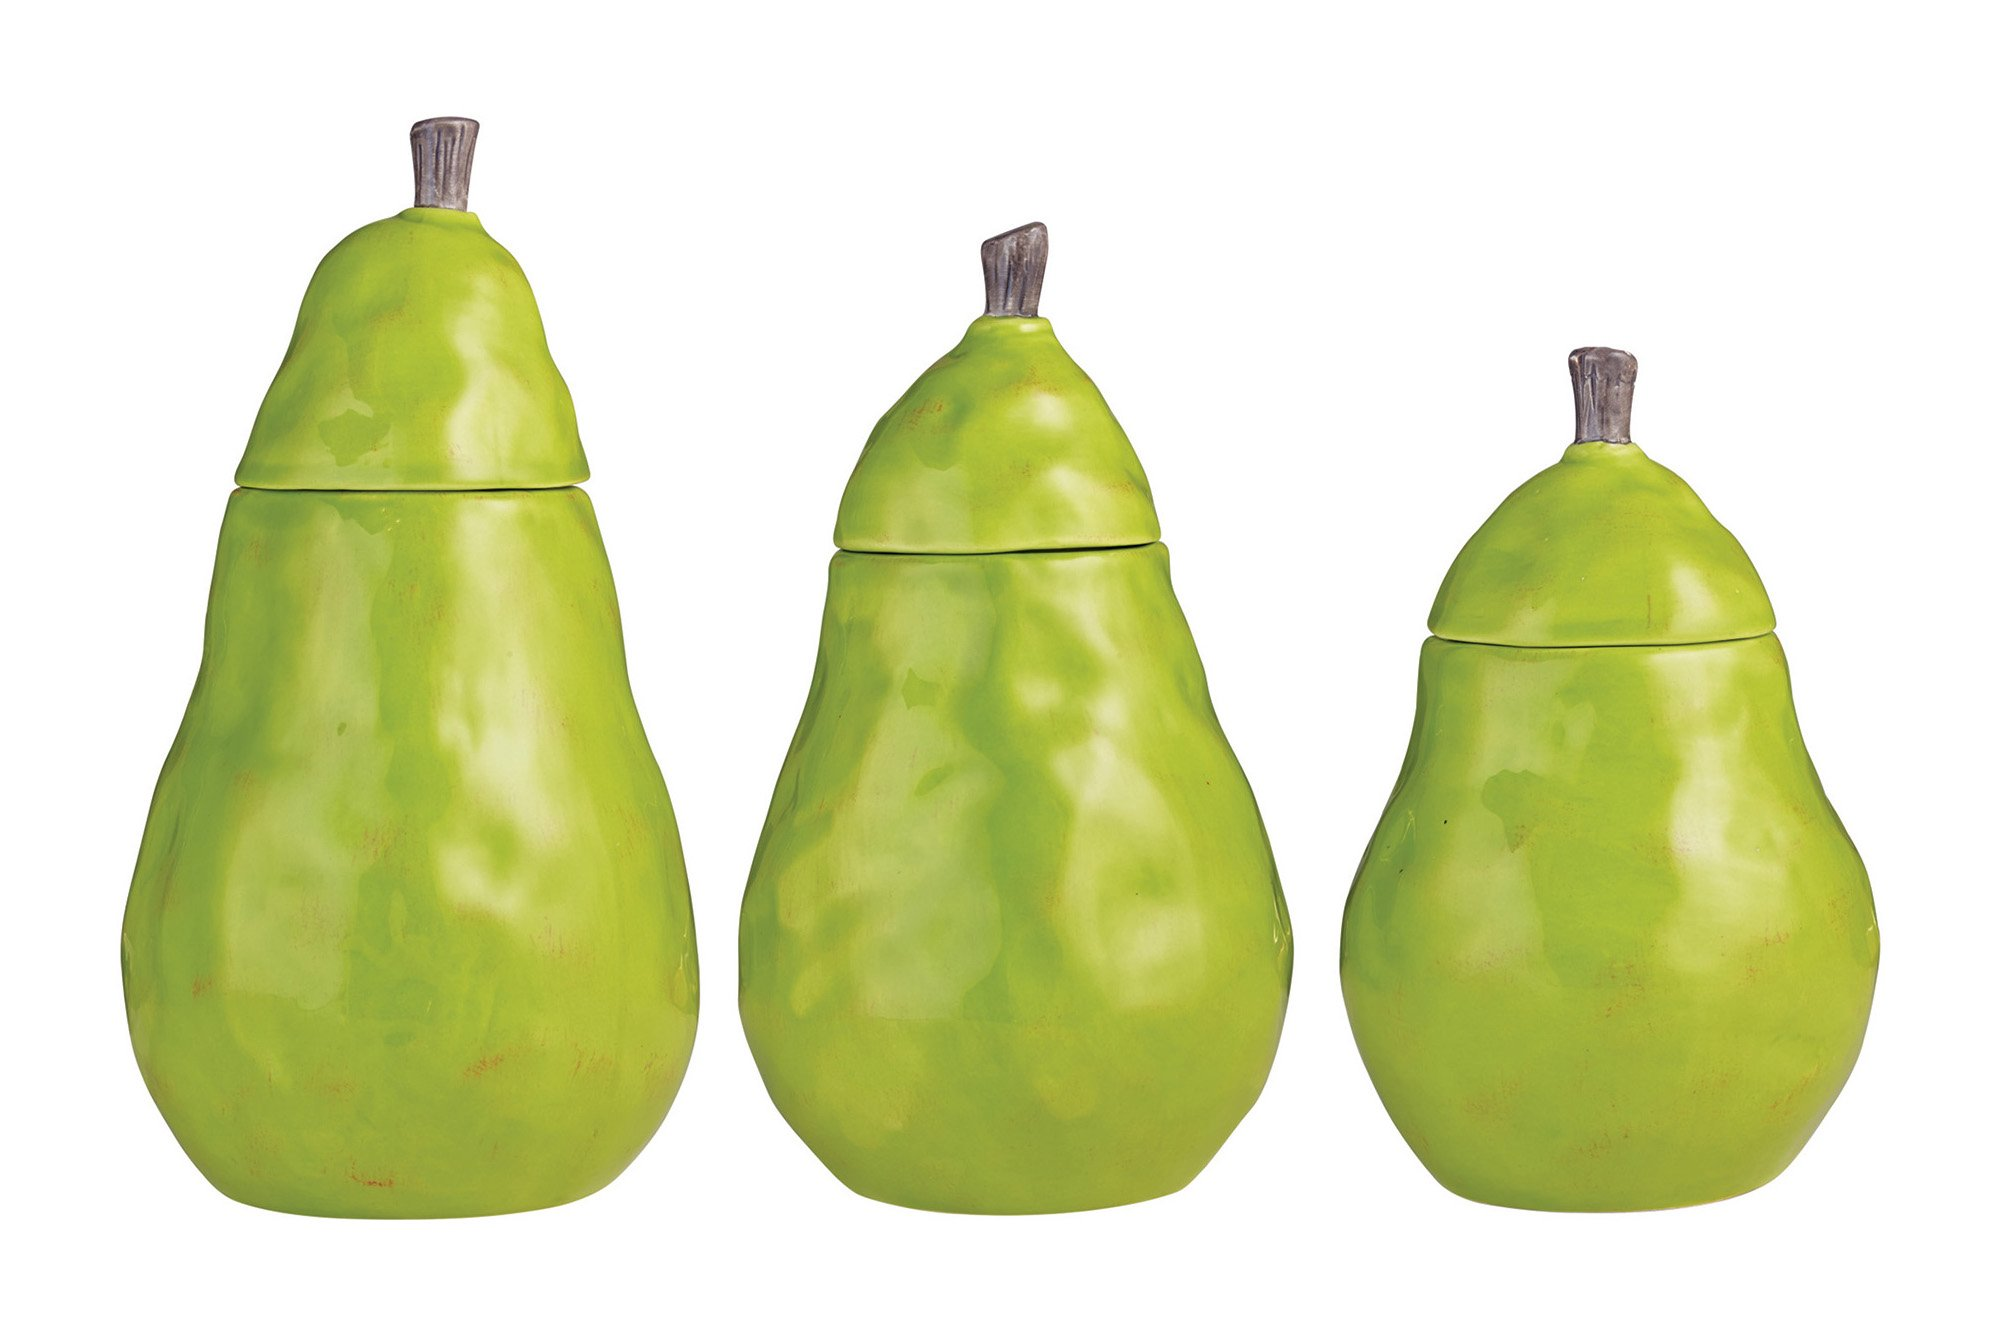 Green Pear Shaped Stoneware Canister Set by Rae Dunn